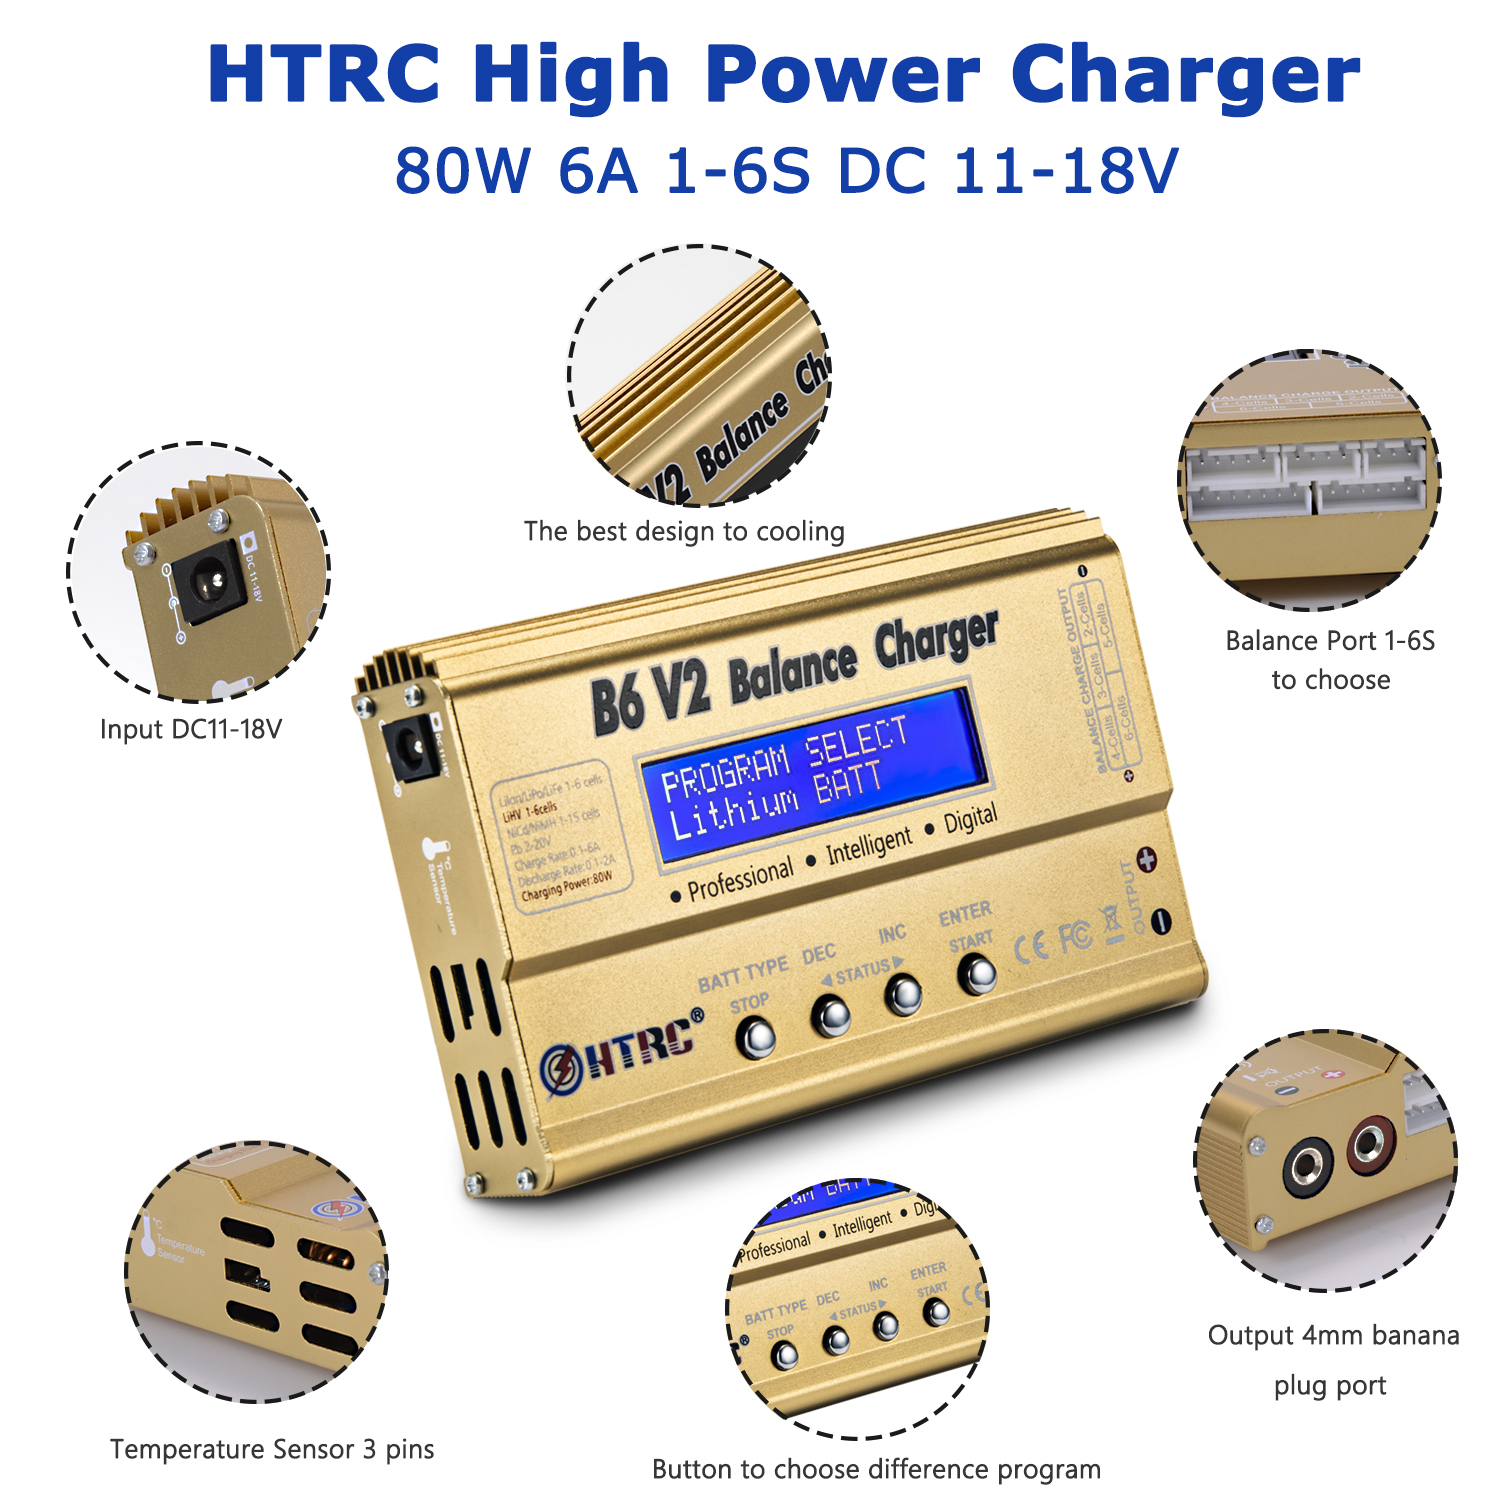 HTRC B6 <strong>V2</strong> 80W Professional Digital Lipo <strong>Battery</strong> Balance Charger Discharger for LiHV LiPo LiIon LiFe NiCd NiMH PB <strong>Battery</strong>